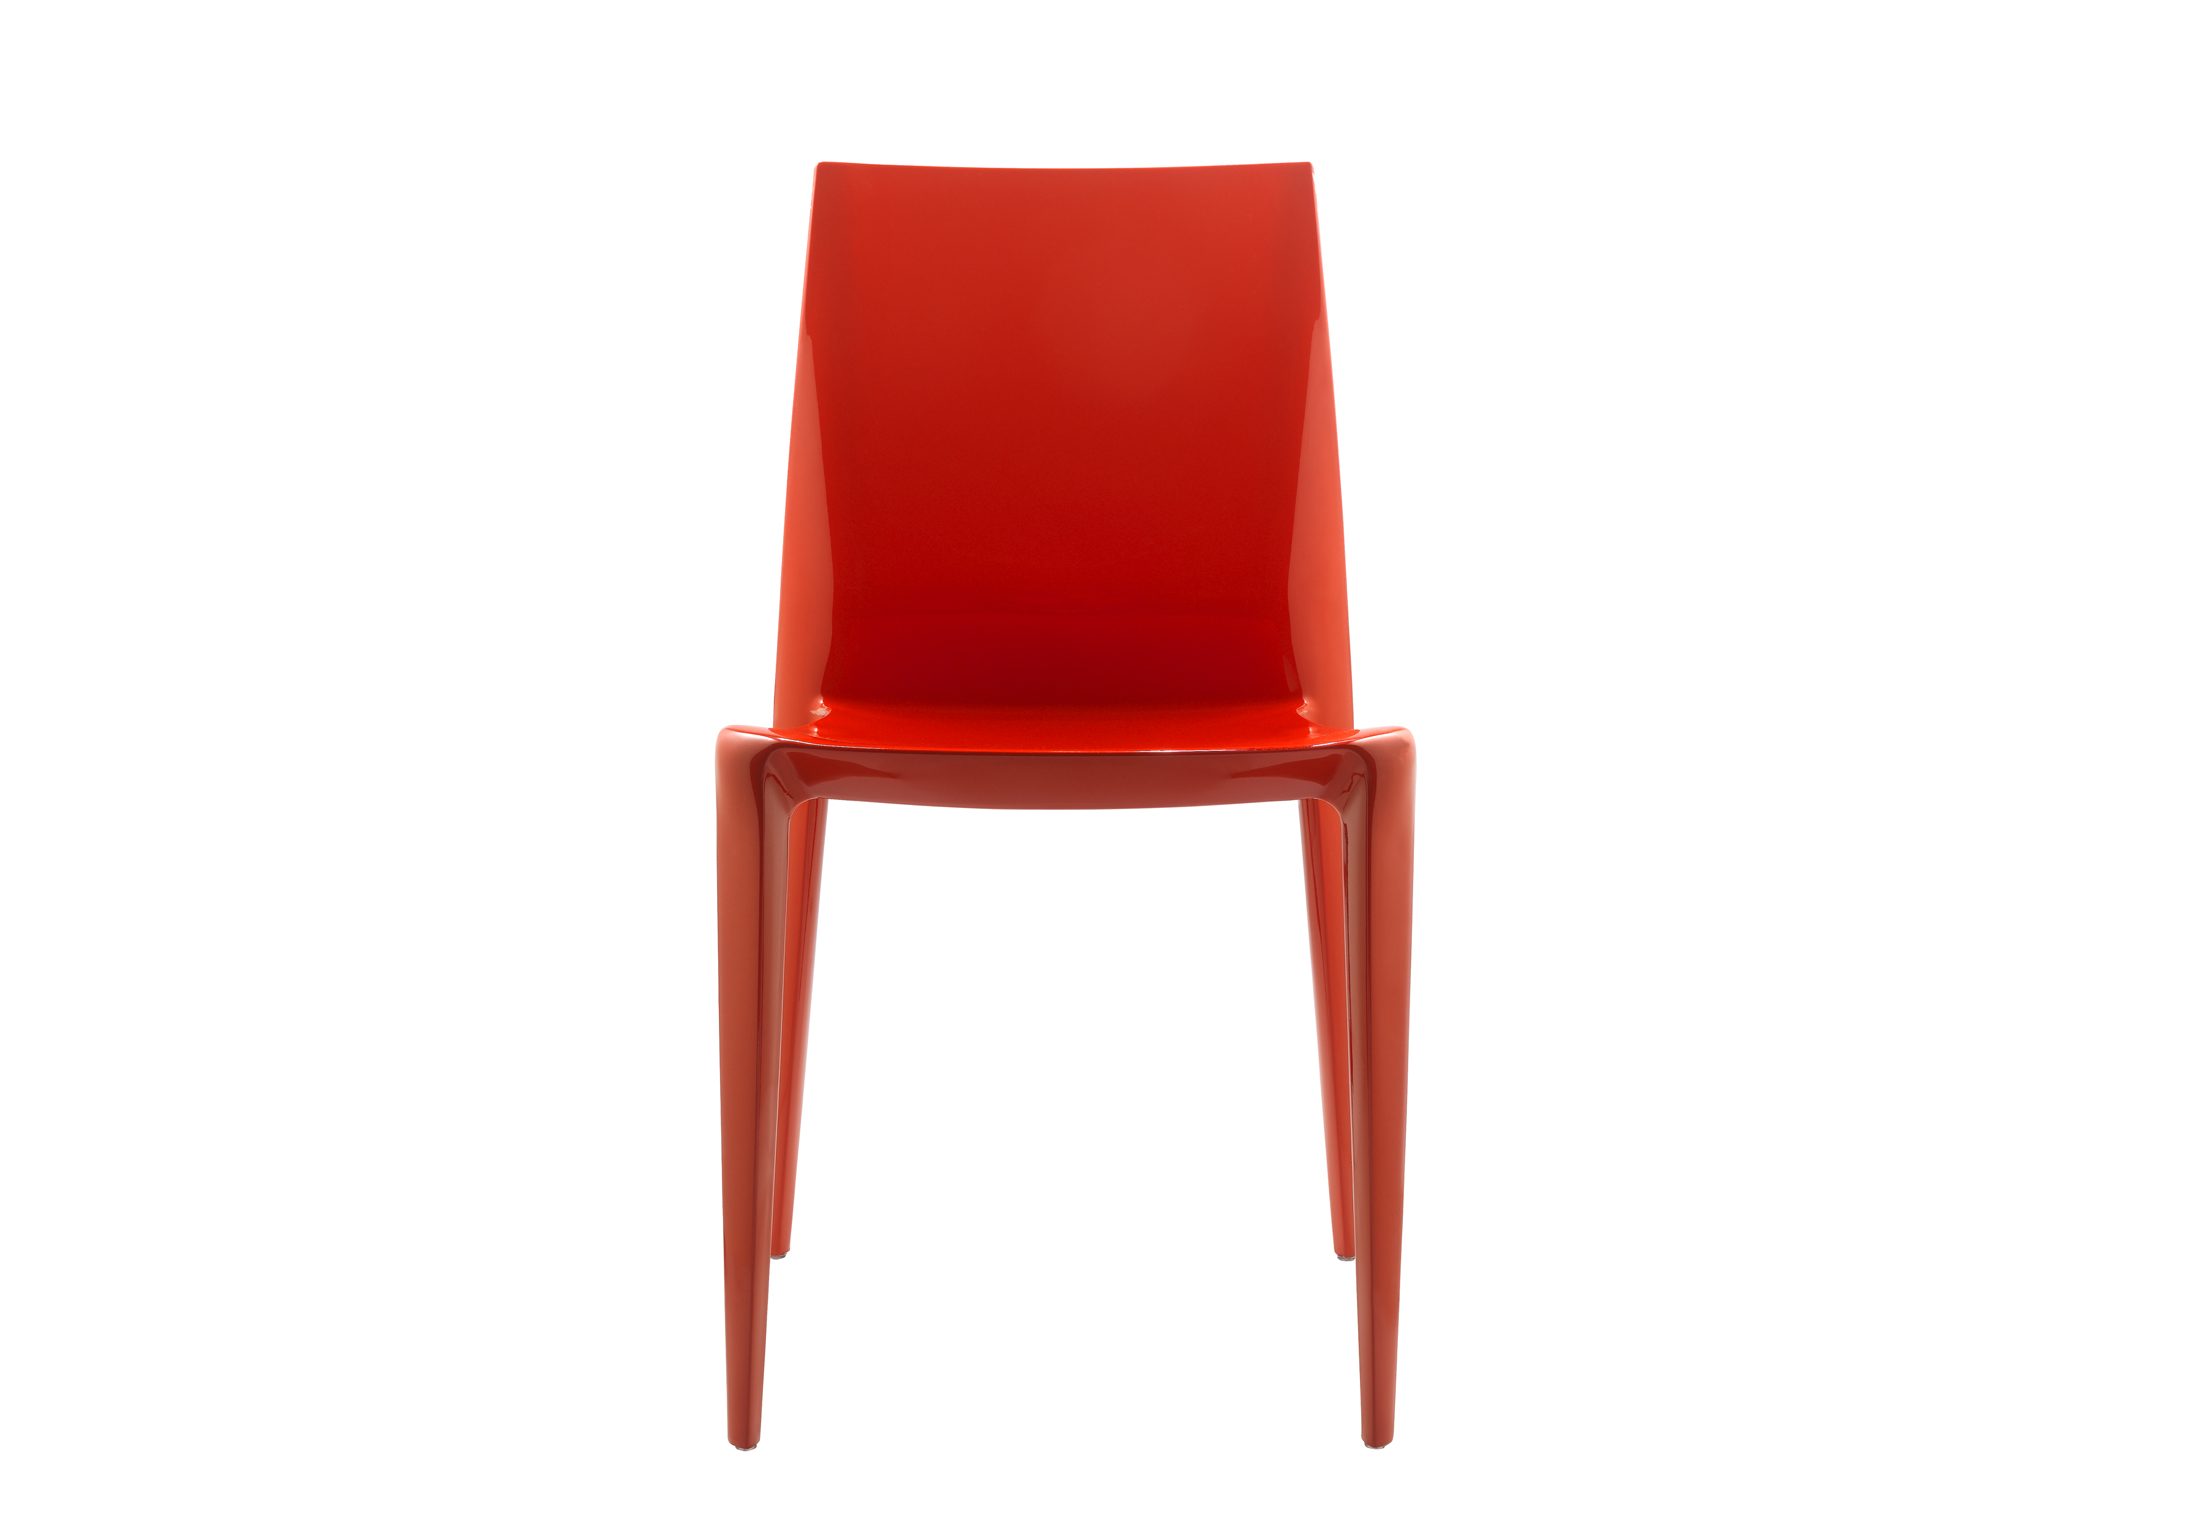 UltraBellini Chair by Heller